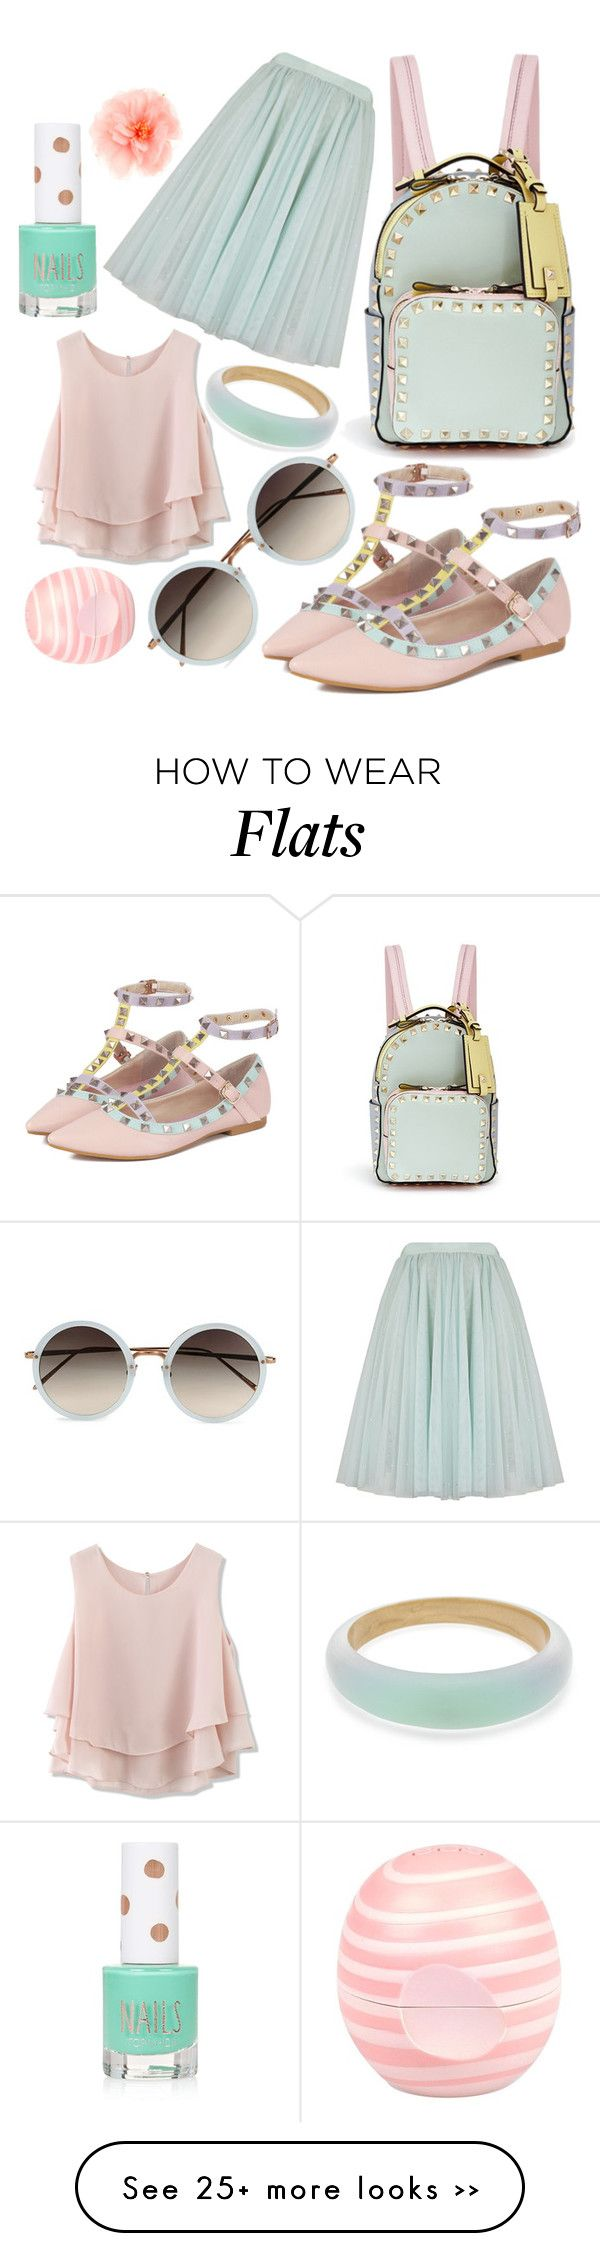 """Untitled #403"" by korareay on Polyvore"